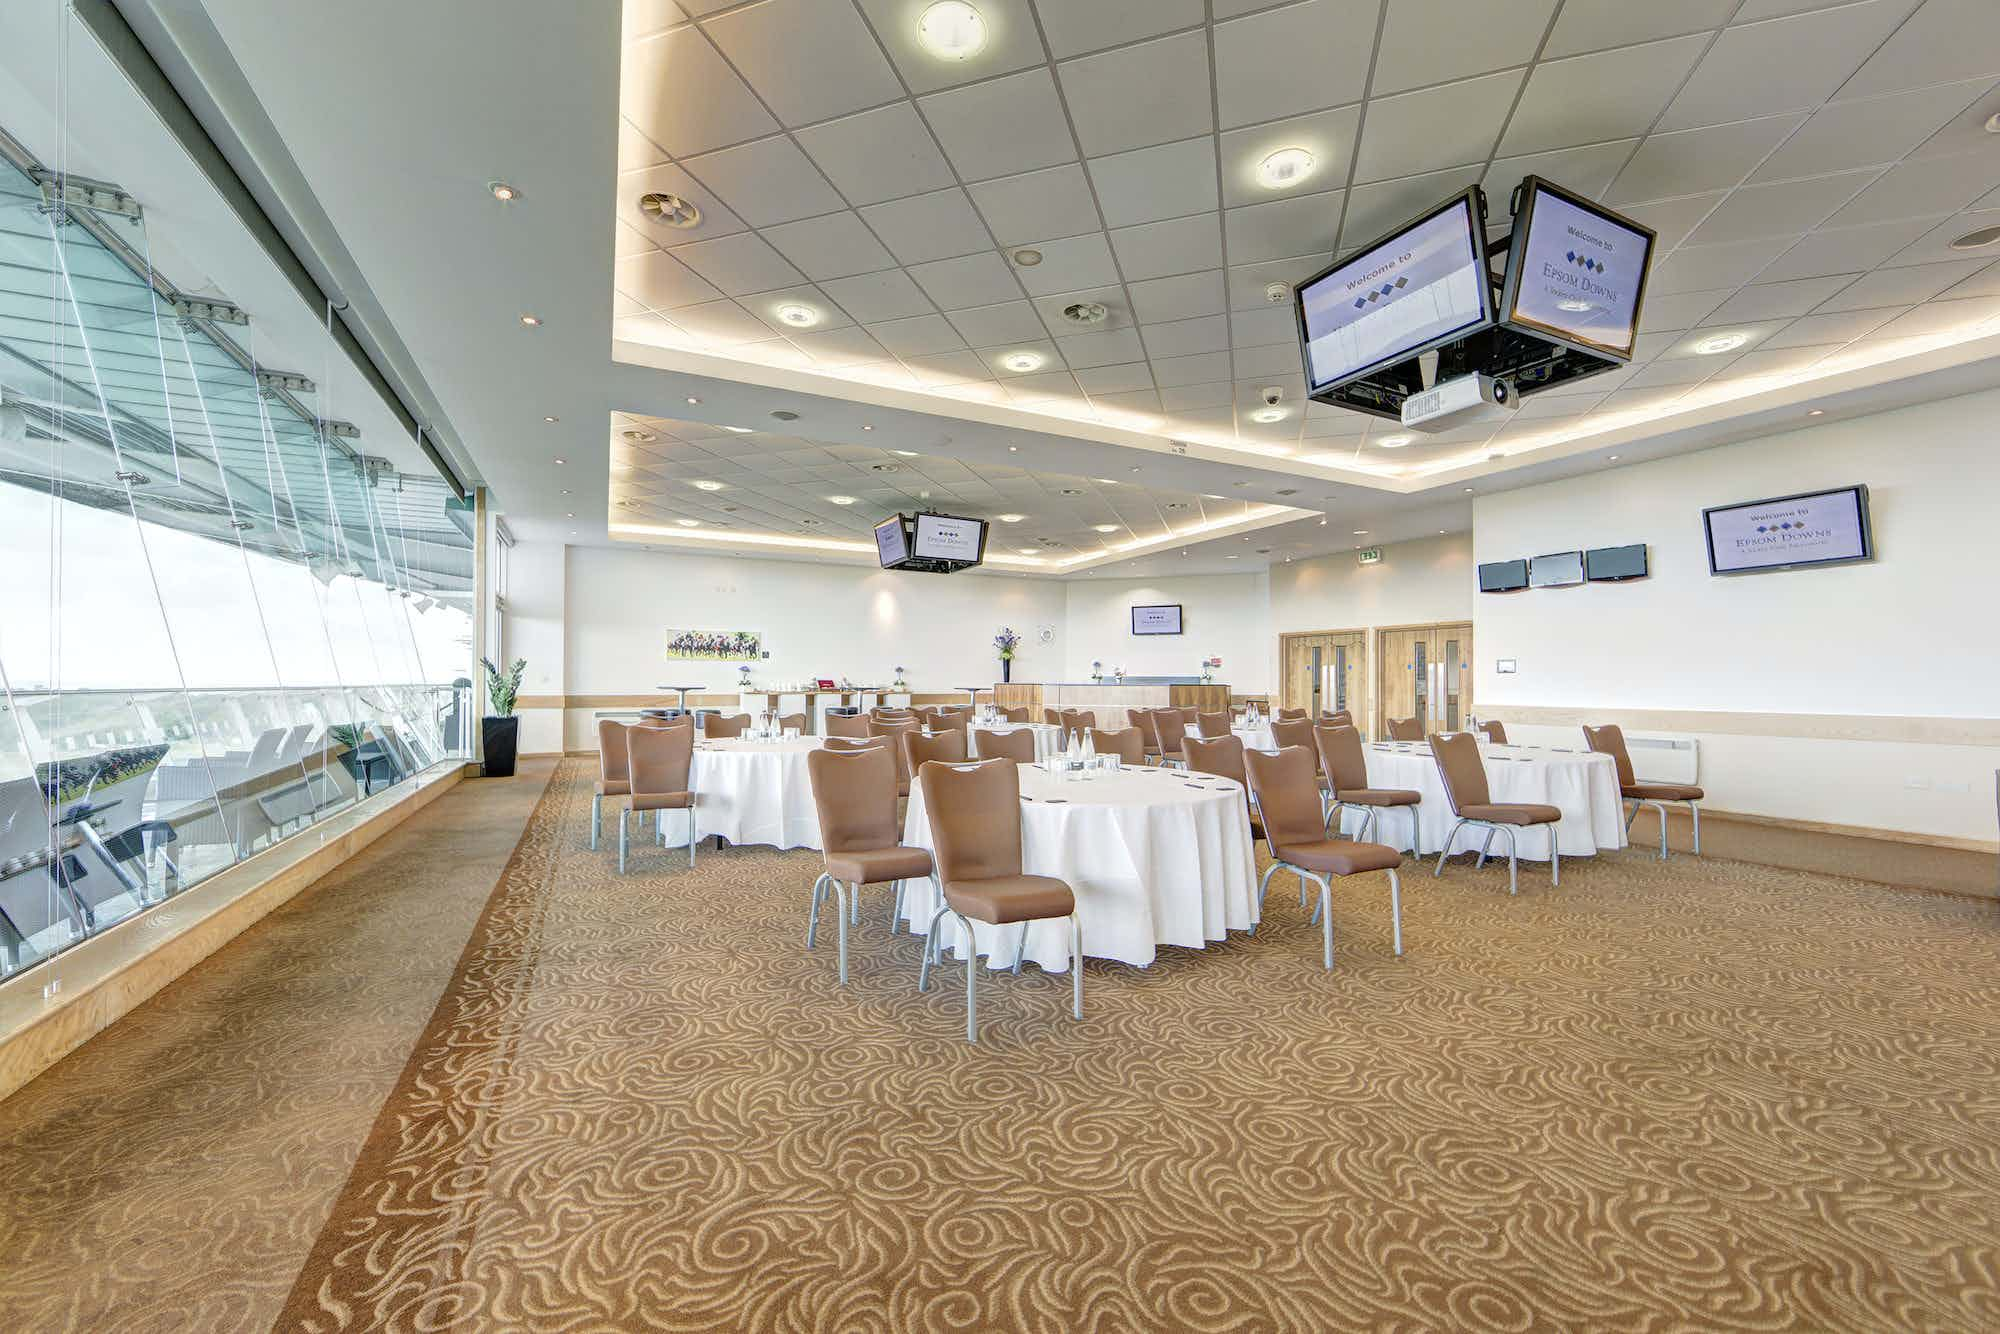 Downs View Room, Epsom Downs Racecourse